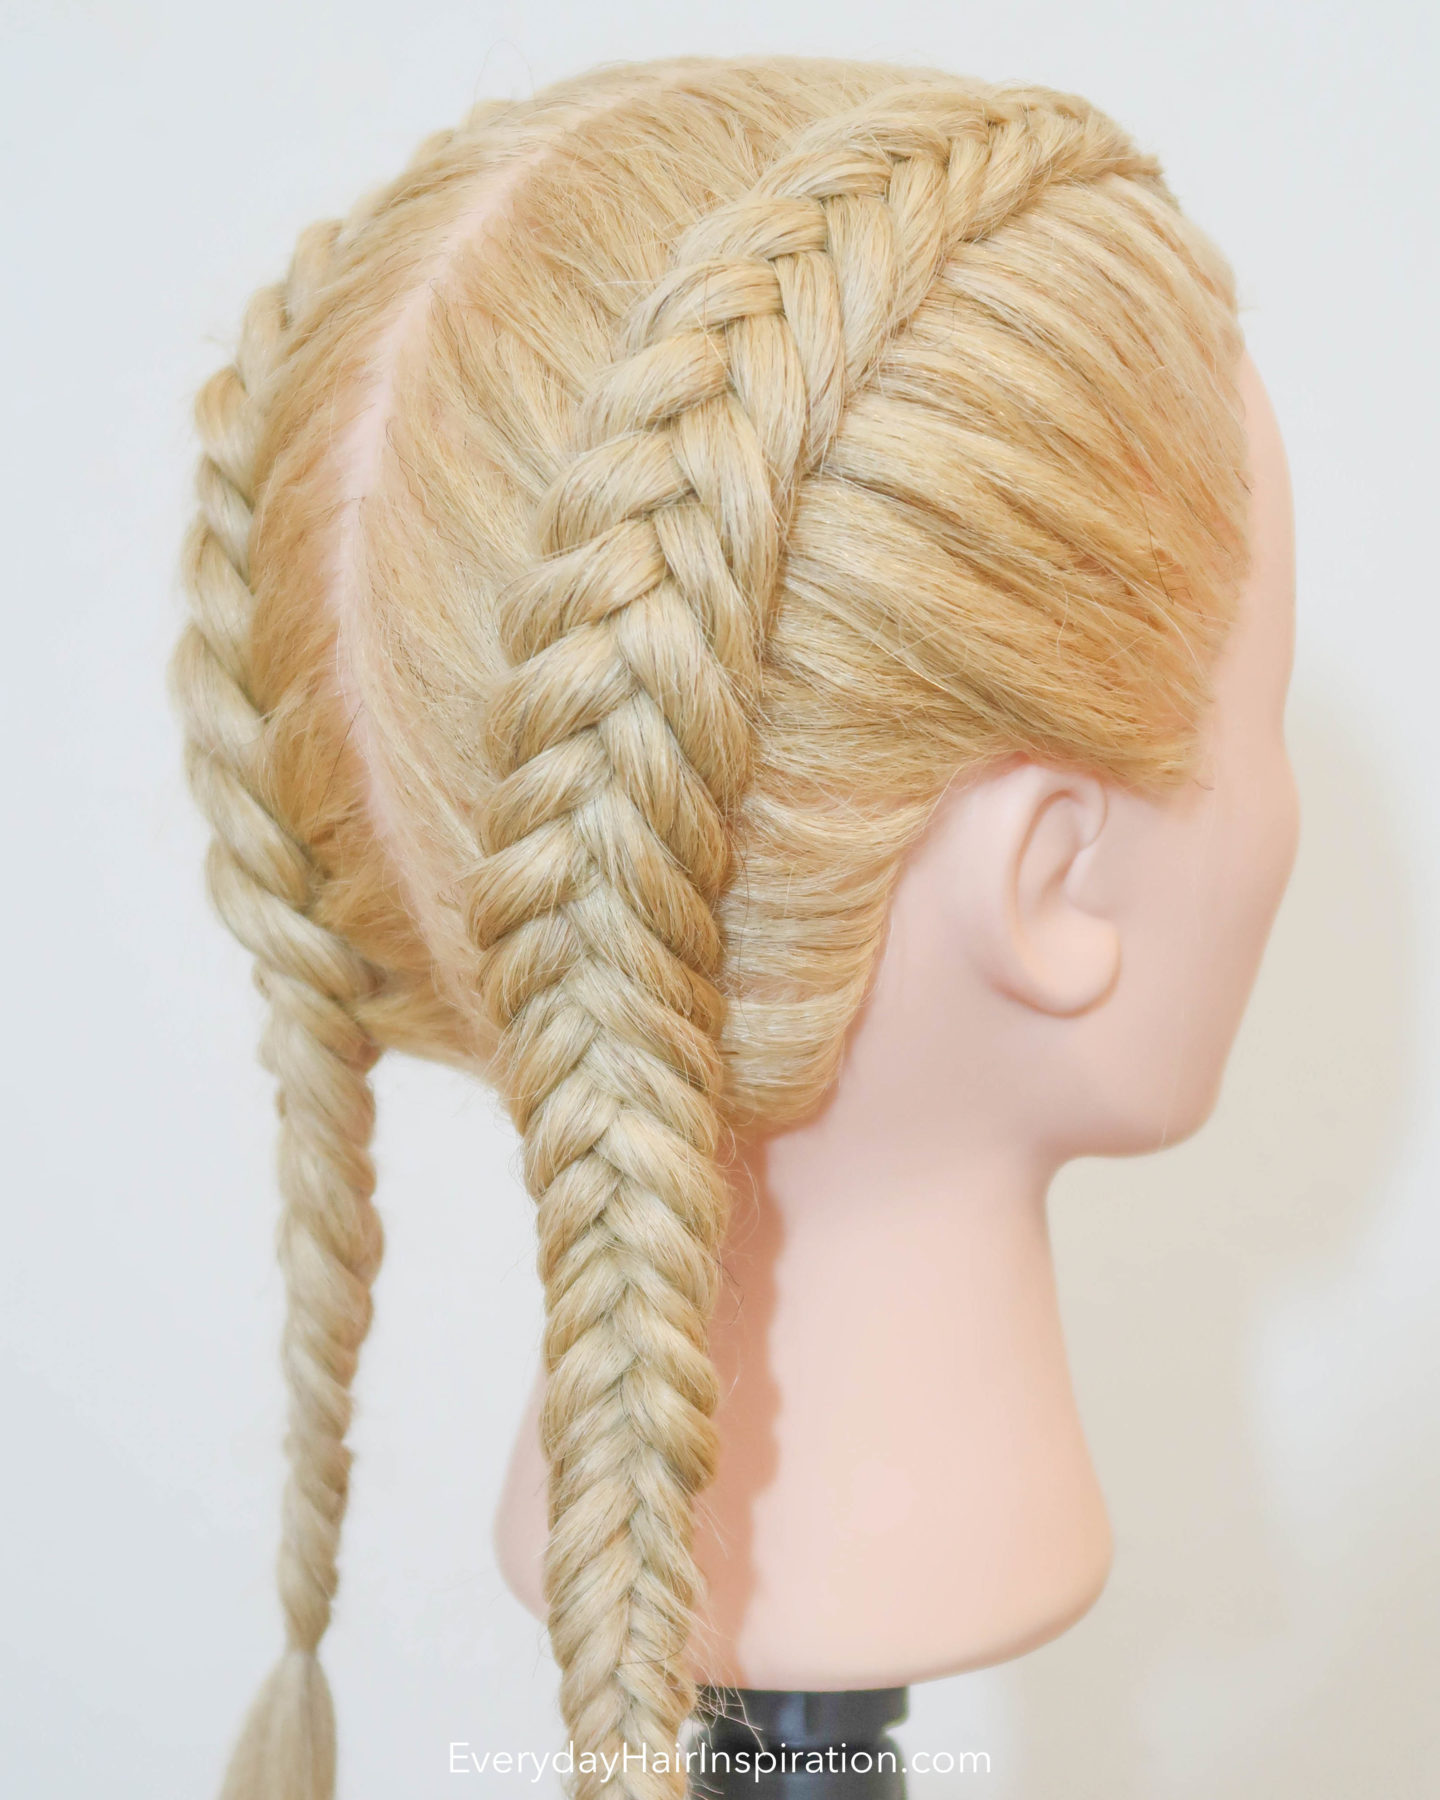 Hairdresser doll, with 2 dutch fishtail braids, one on each side.